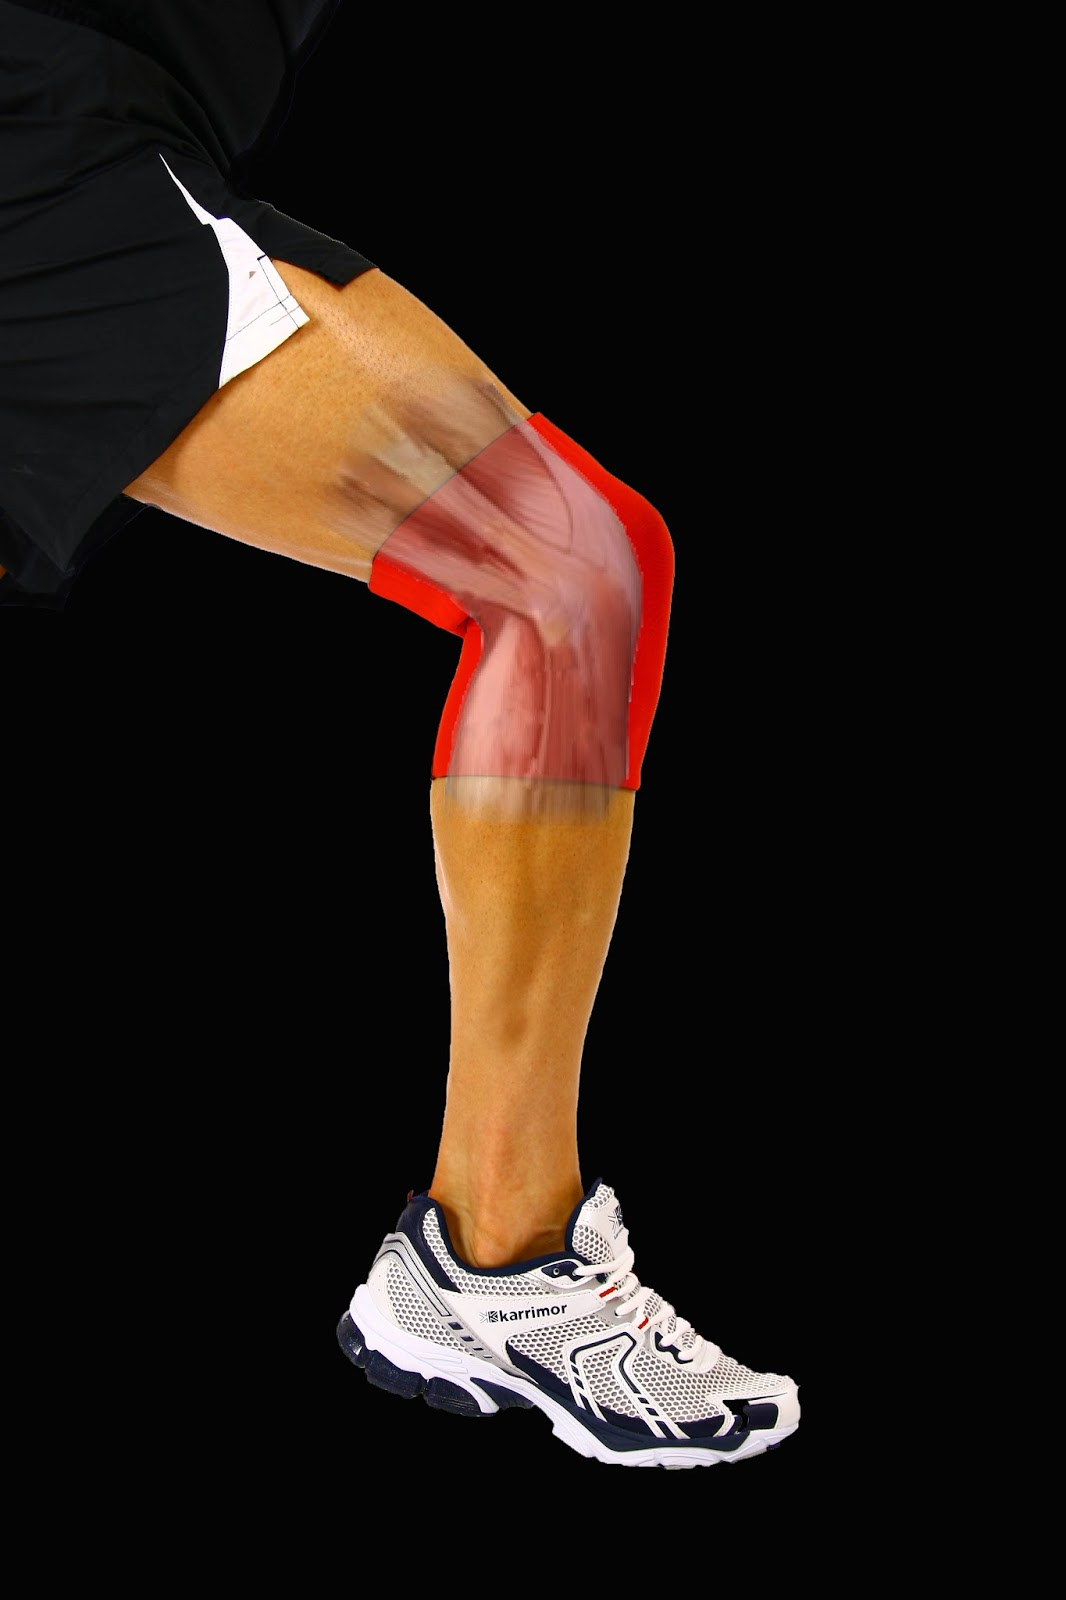 Knee Pain - Running with Knee Pain